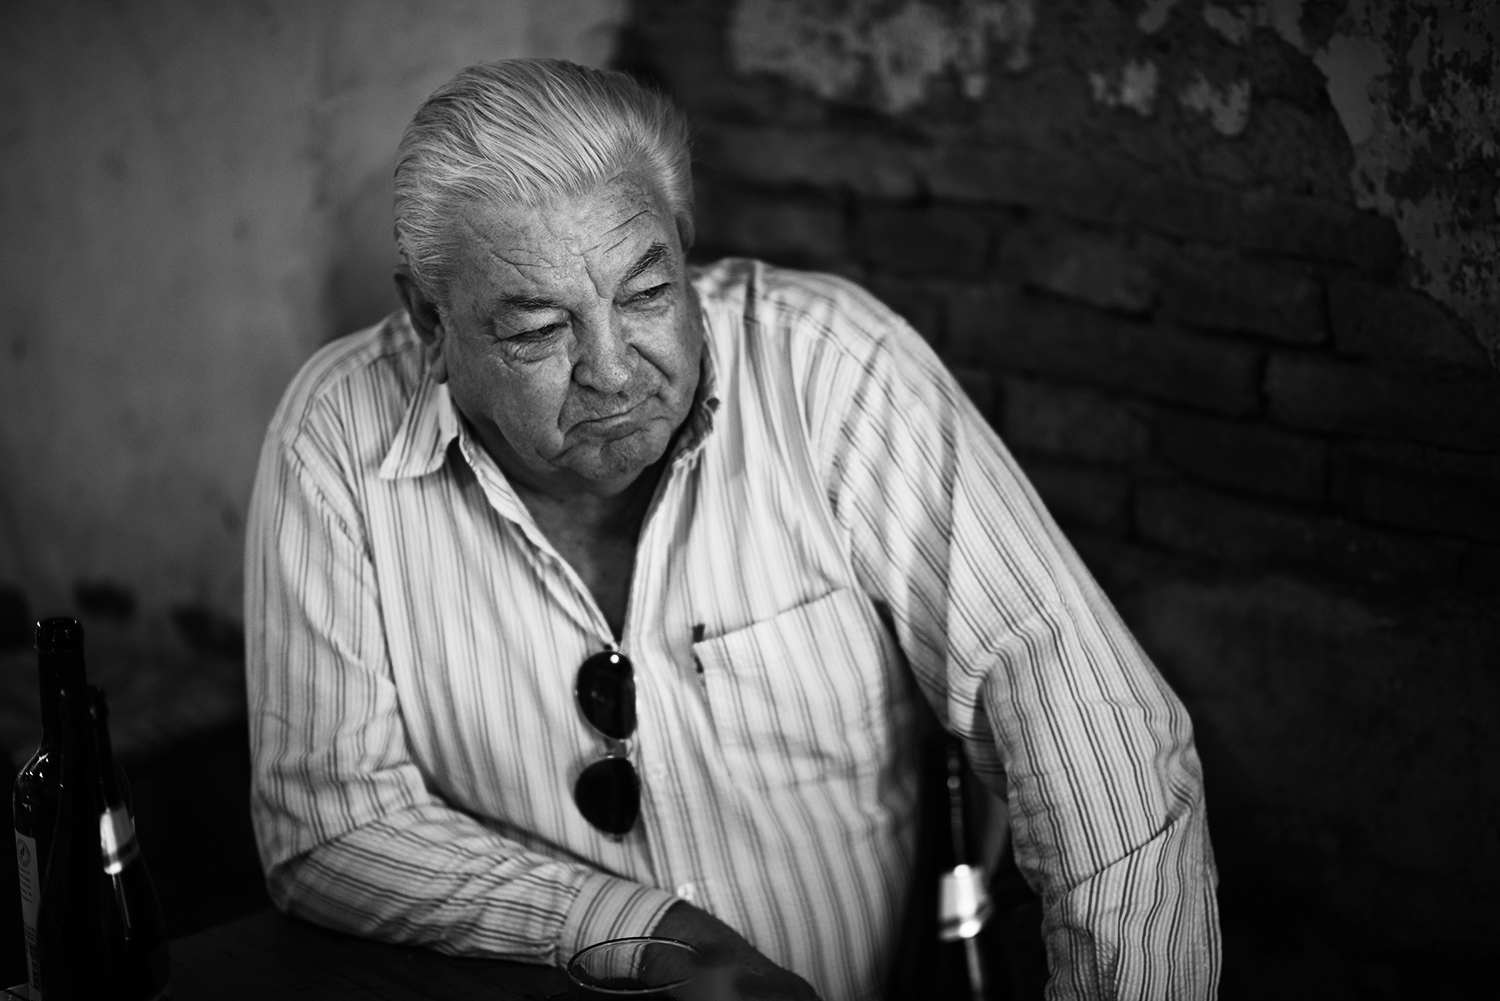 Diego Kelly of San Antonio de Areco sits in a bar during a typical Argentine lunch of Malbec and asado.